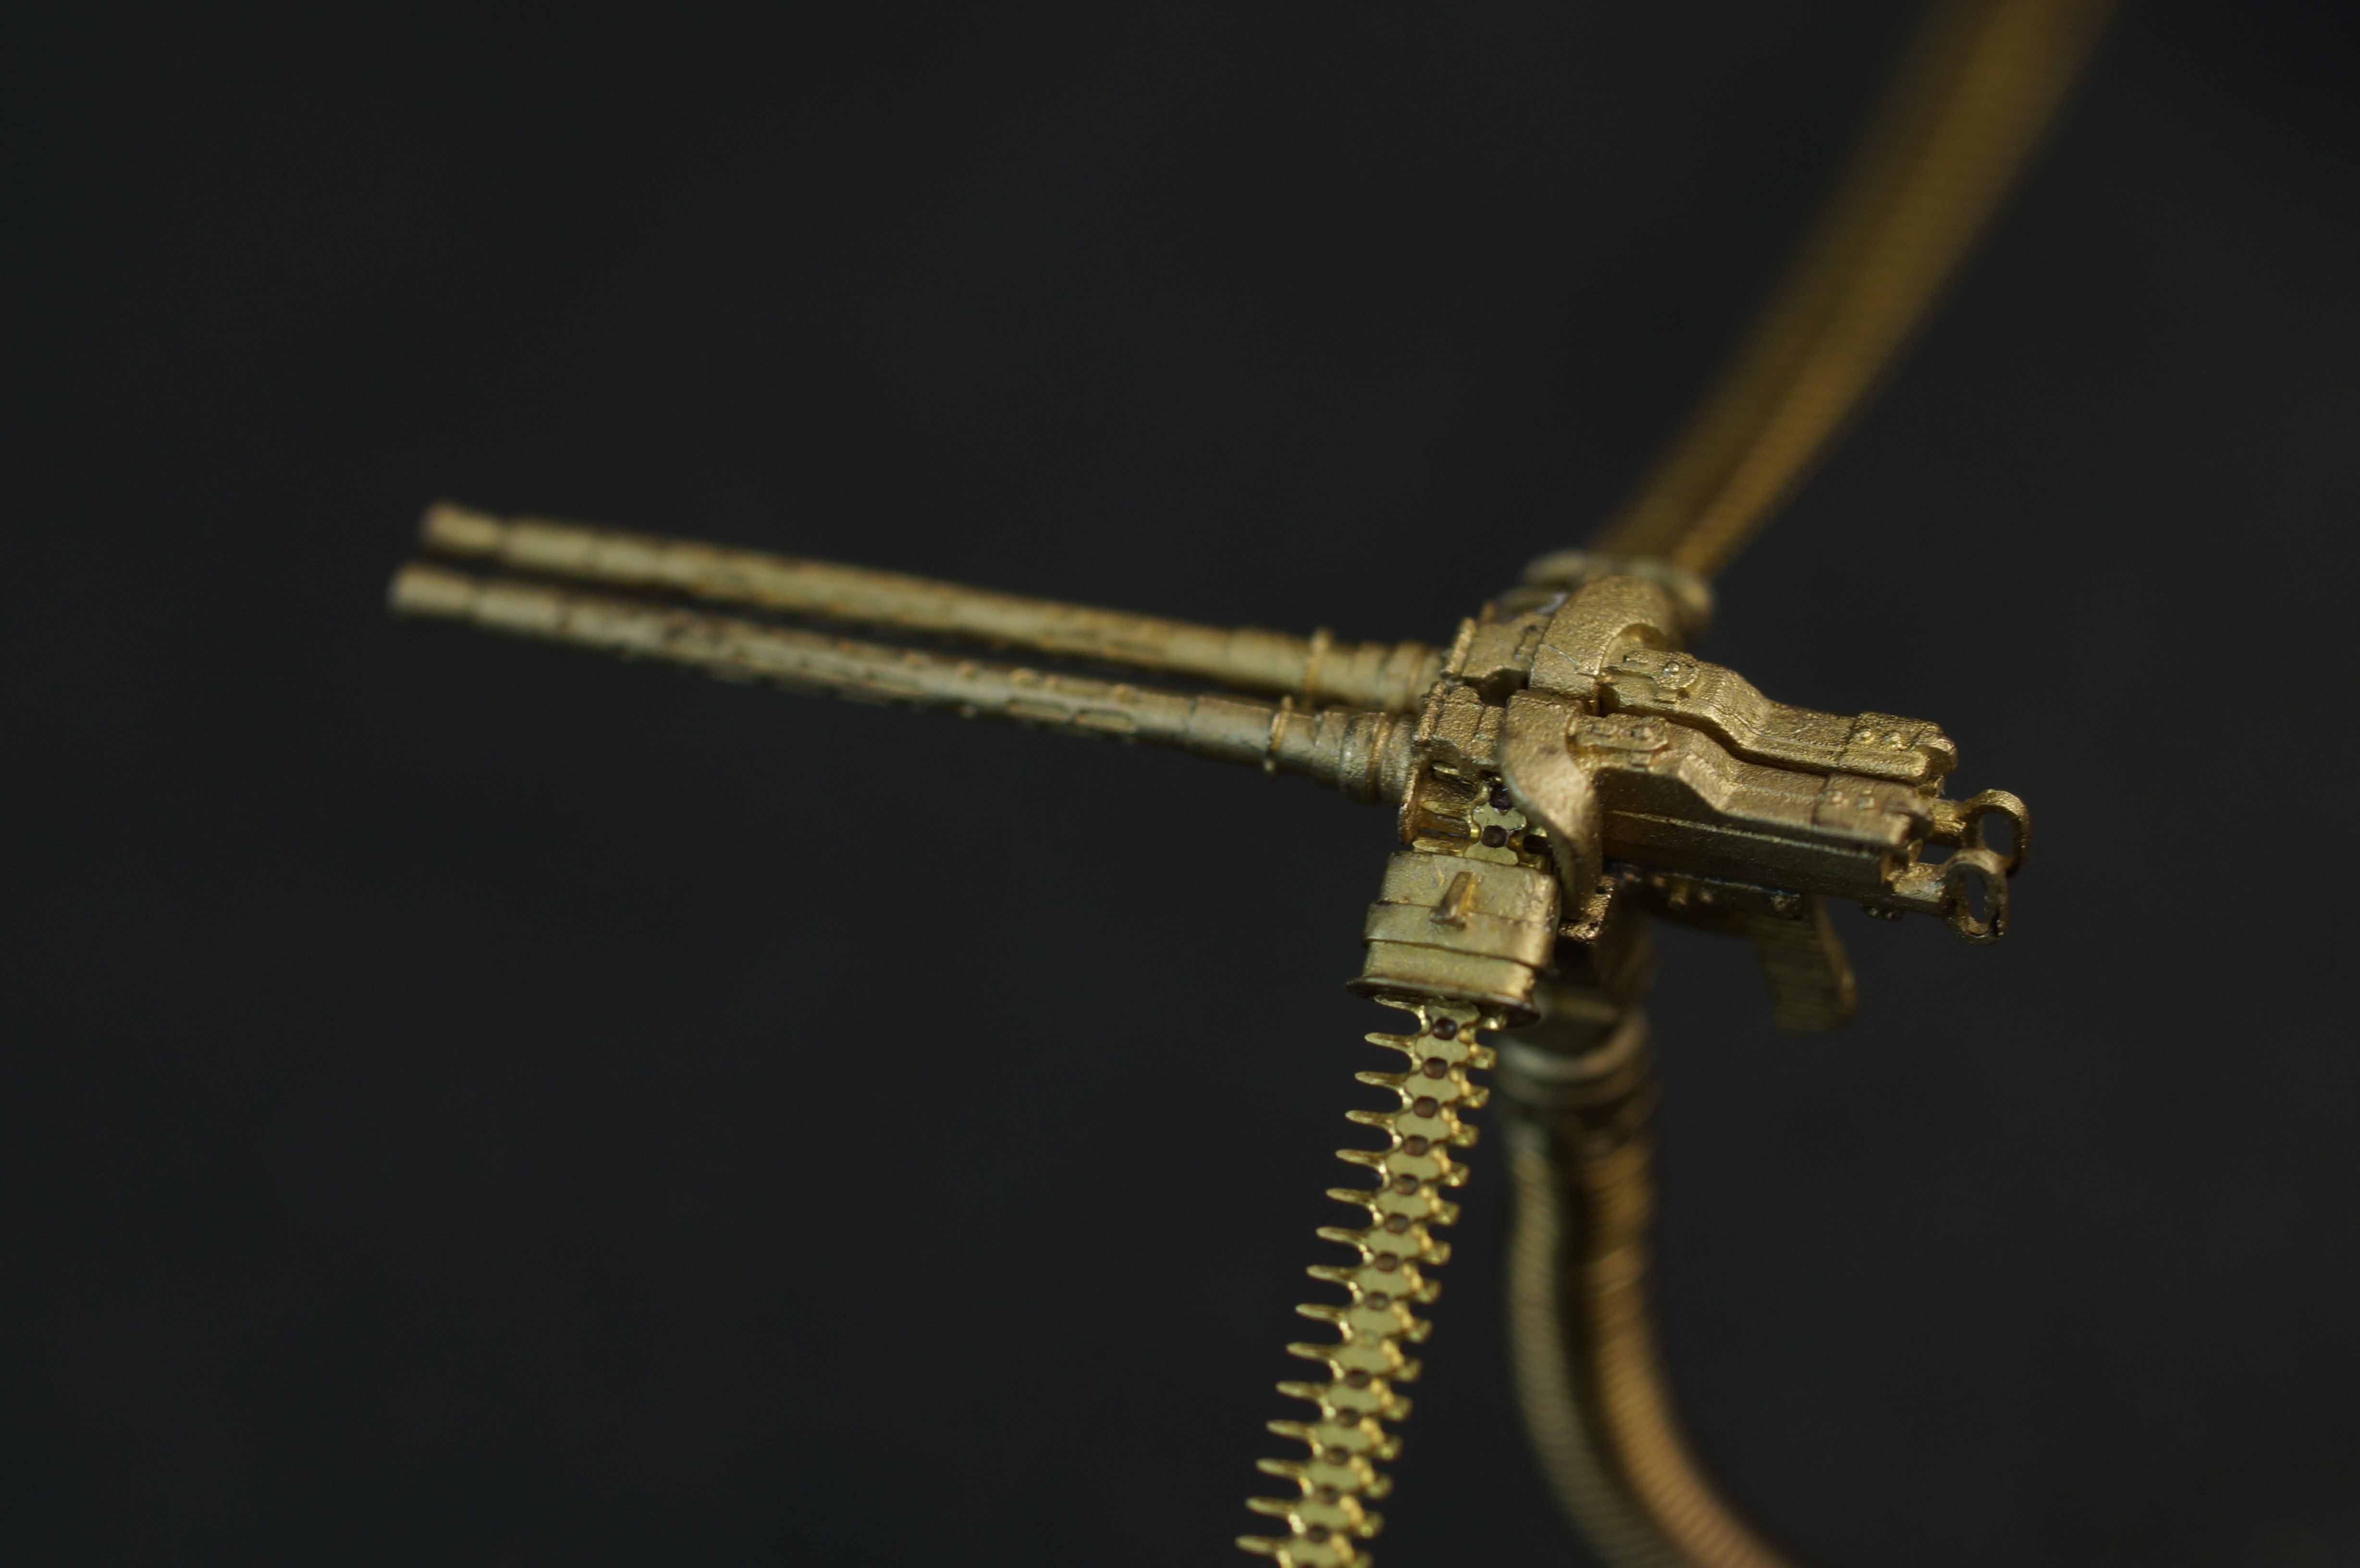 Miniworld 1/48 MG-81Z German WWII twin machine gun